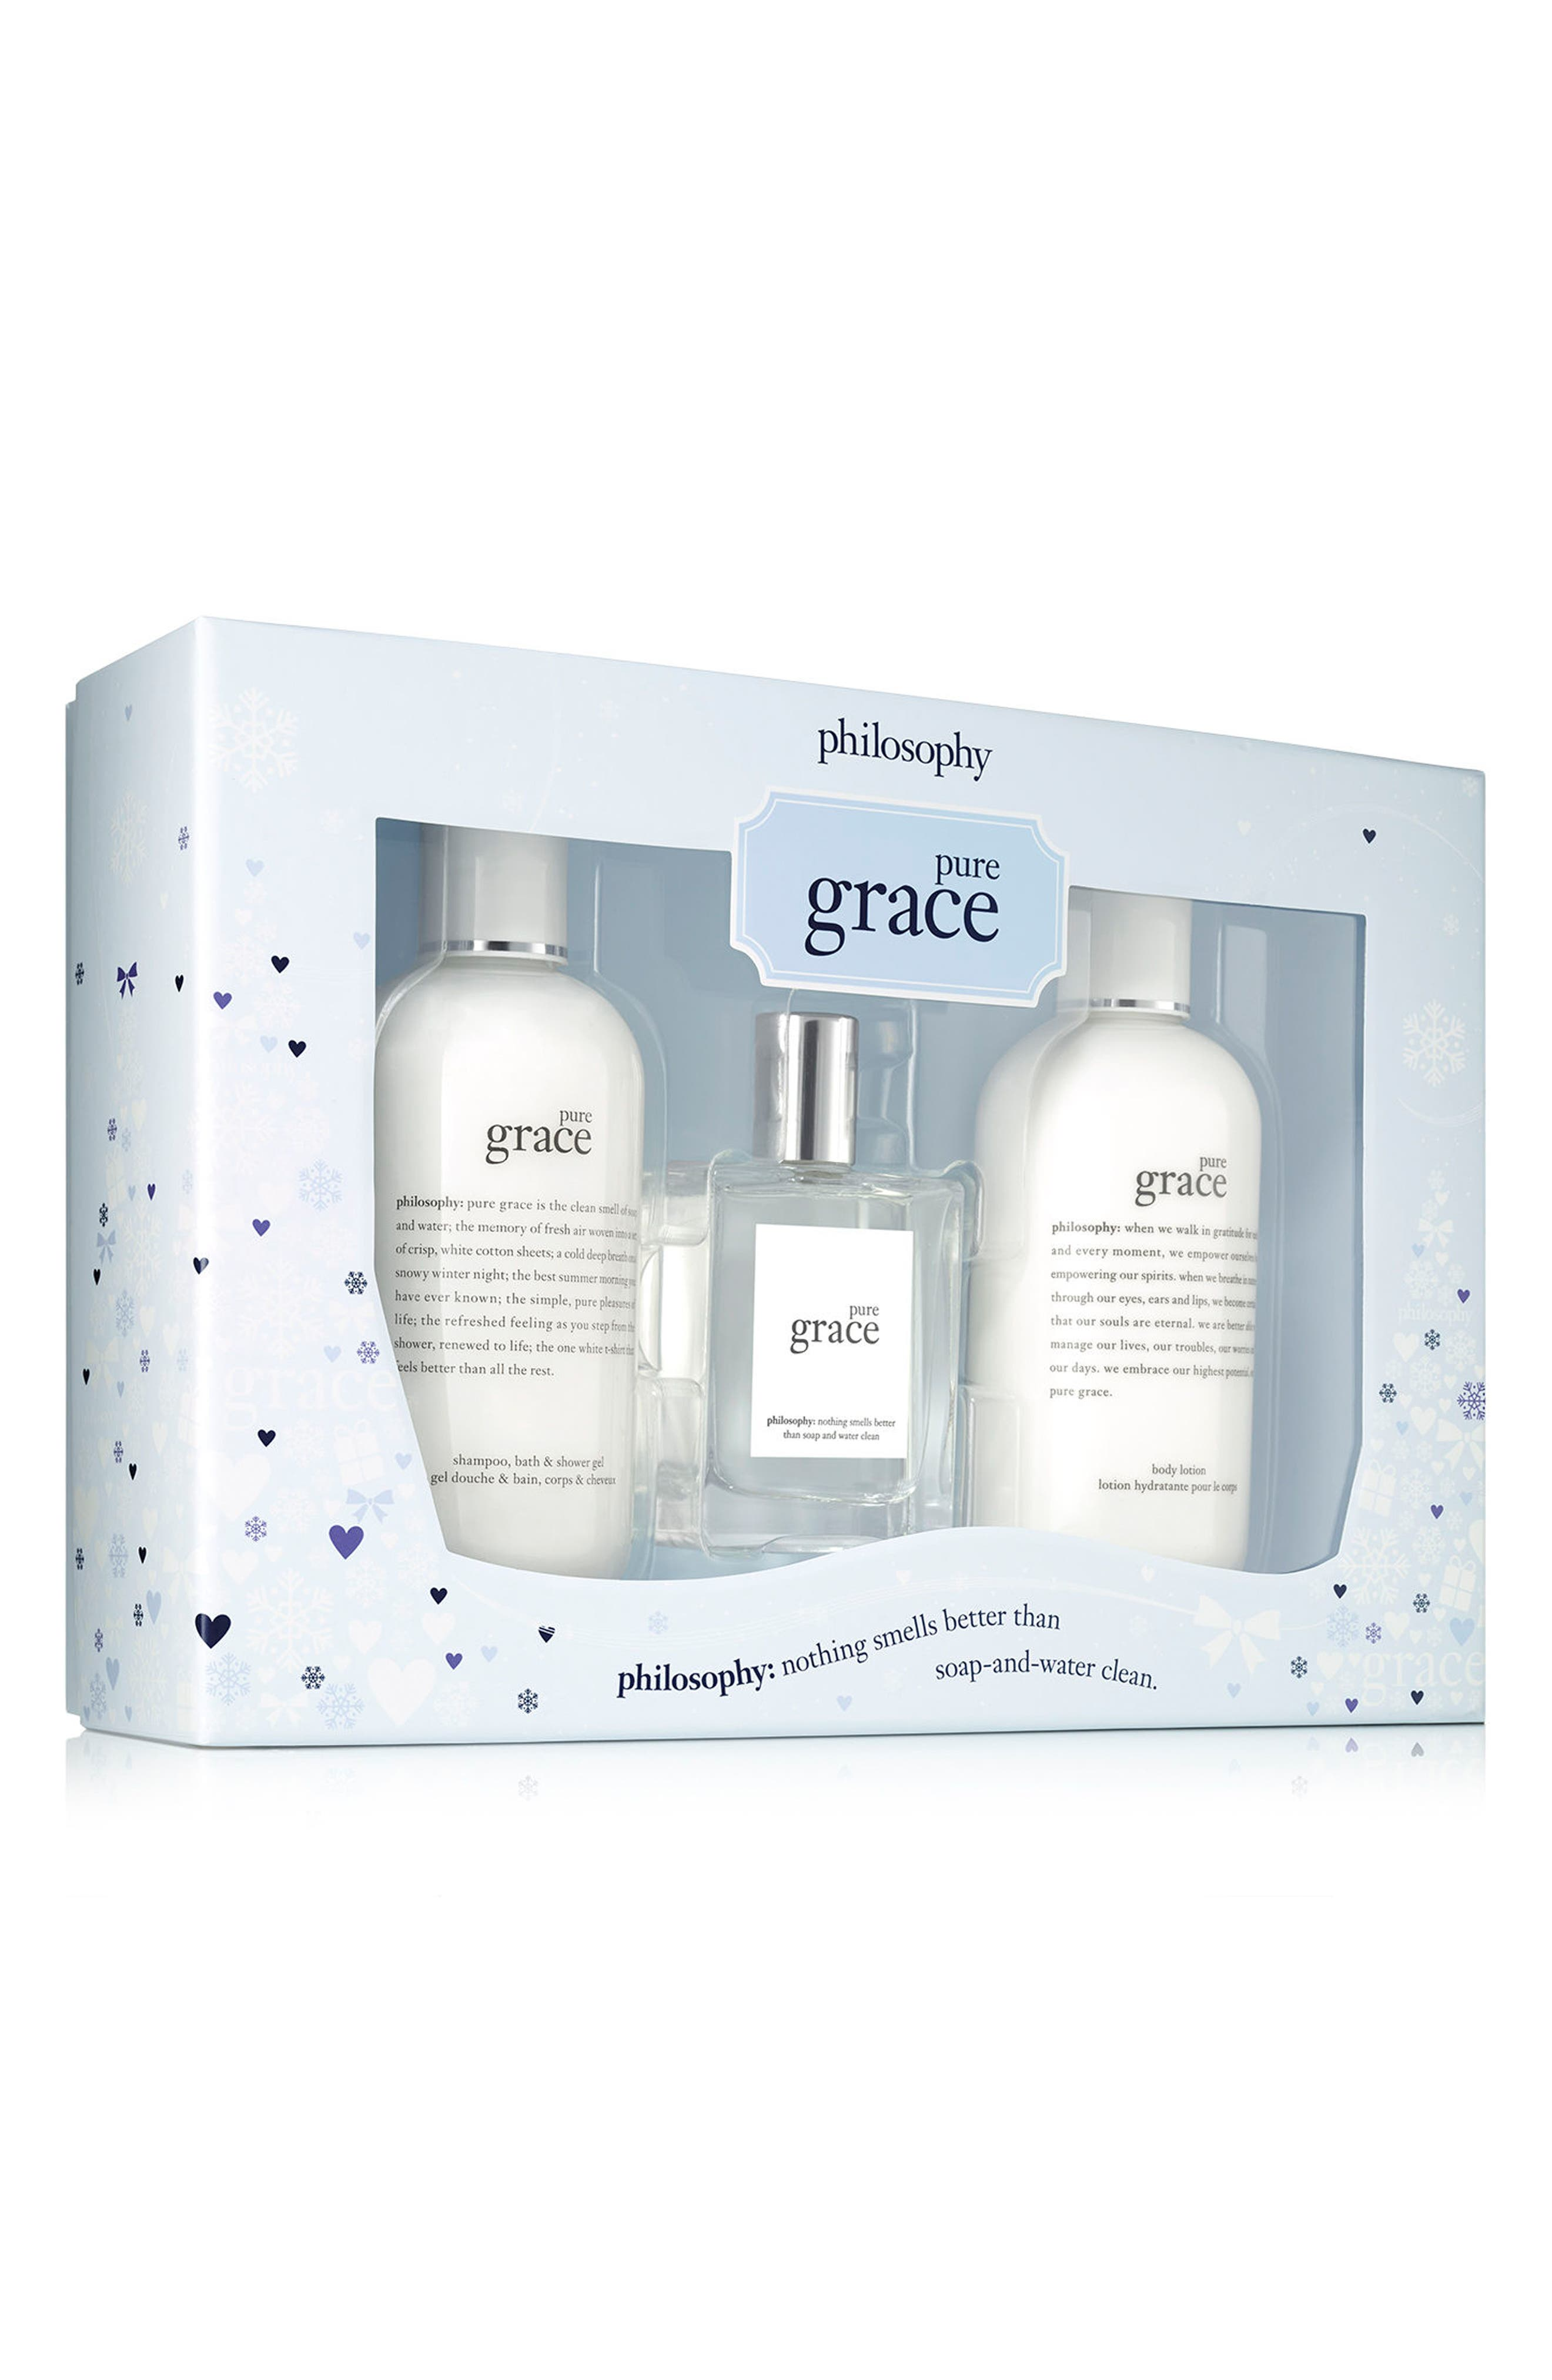 philosophy pure grace set (Limited Edition) ($88 Value)